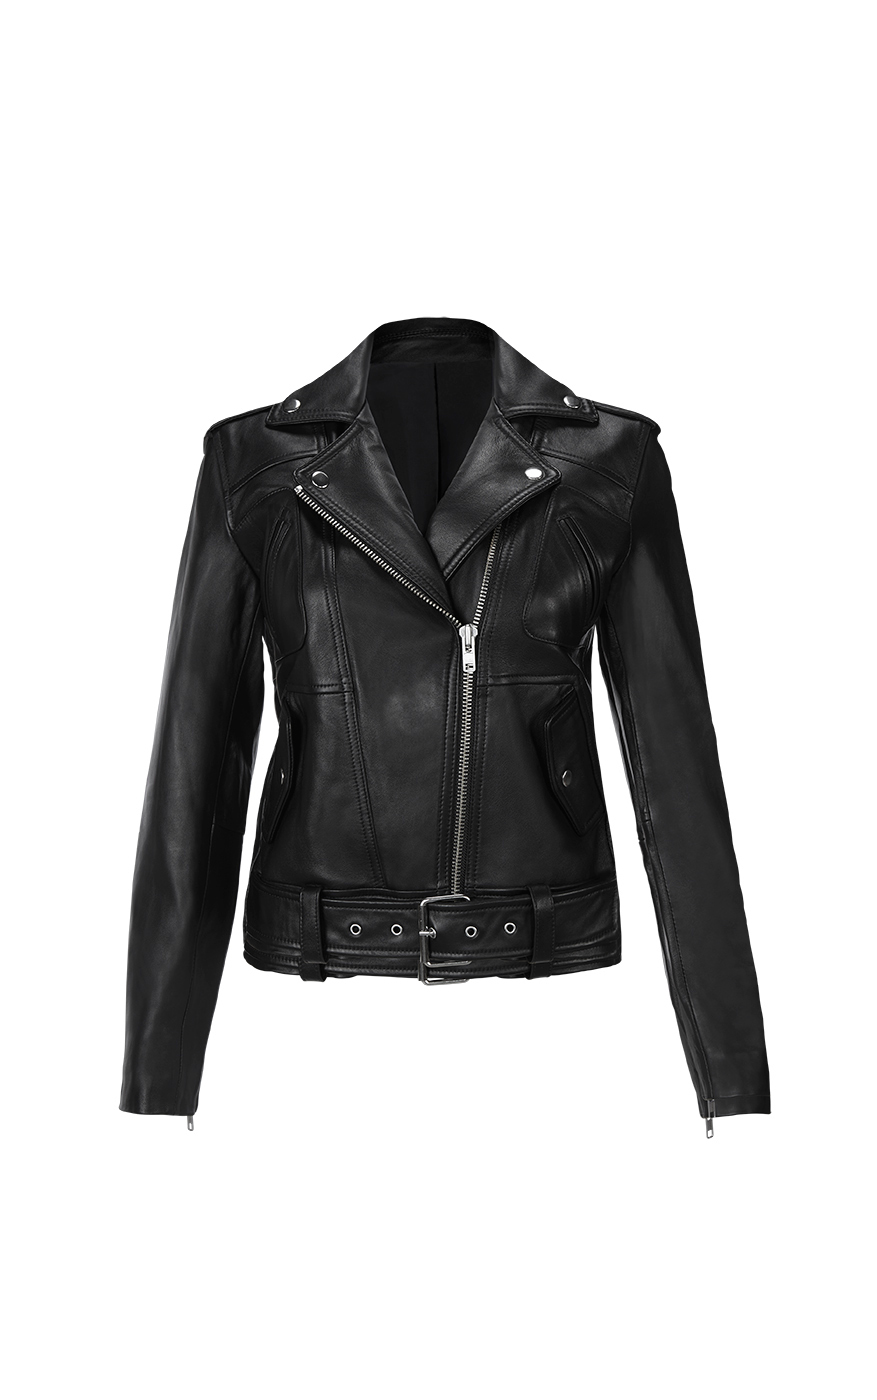 cabi's Outlaw Jacket